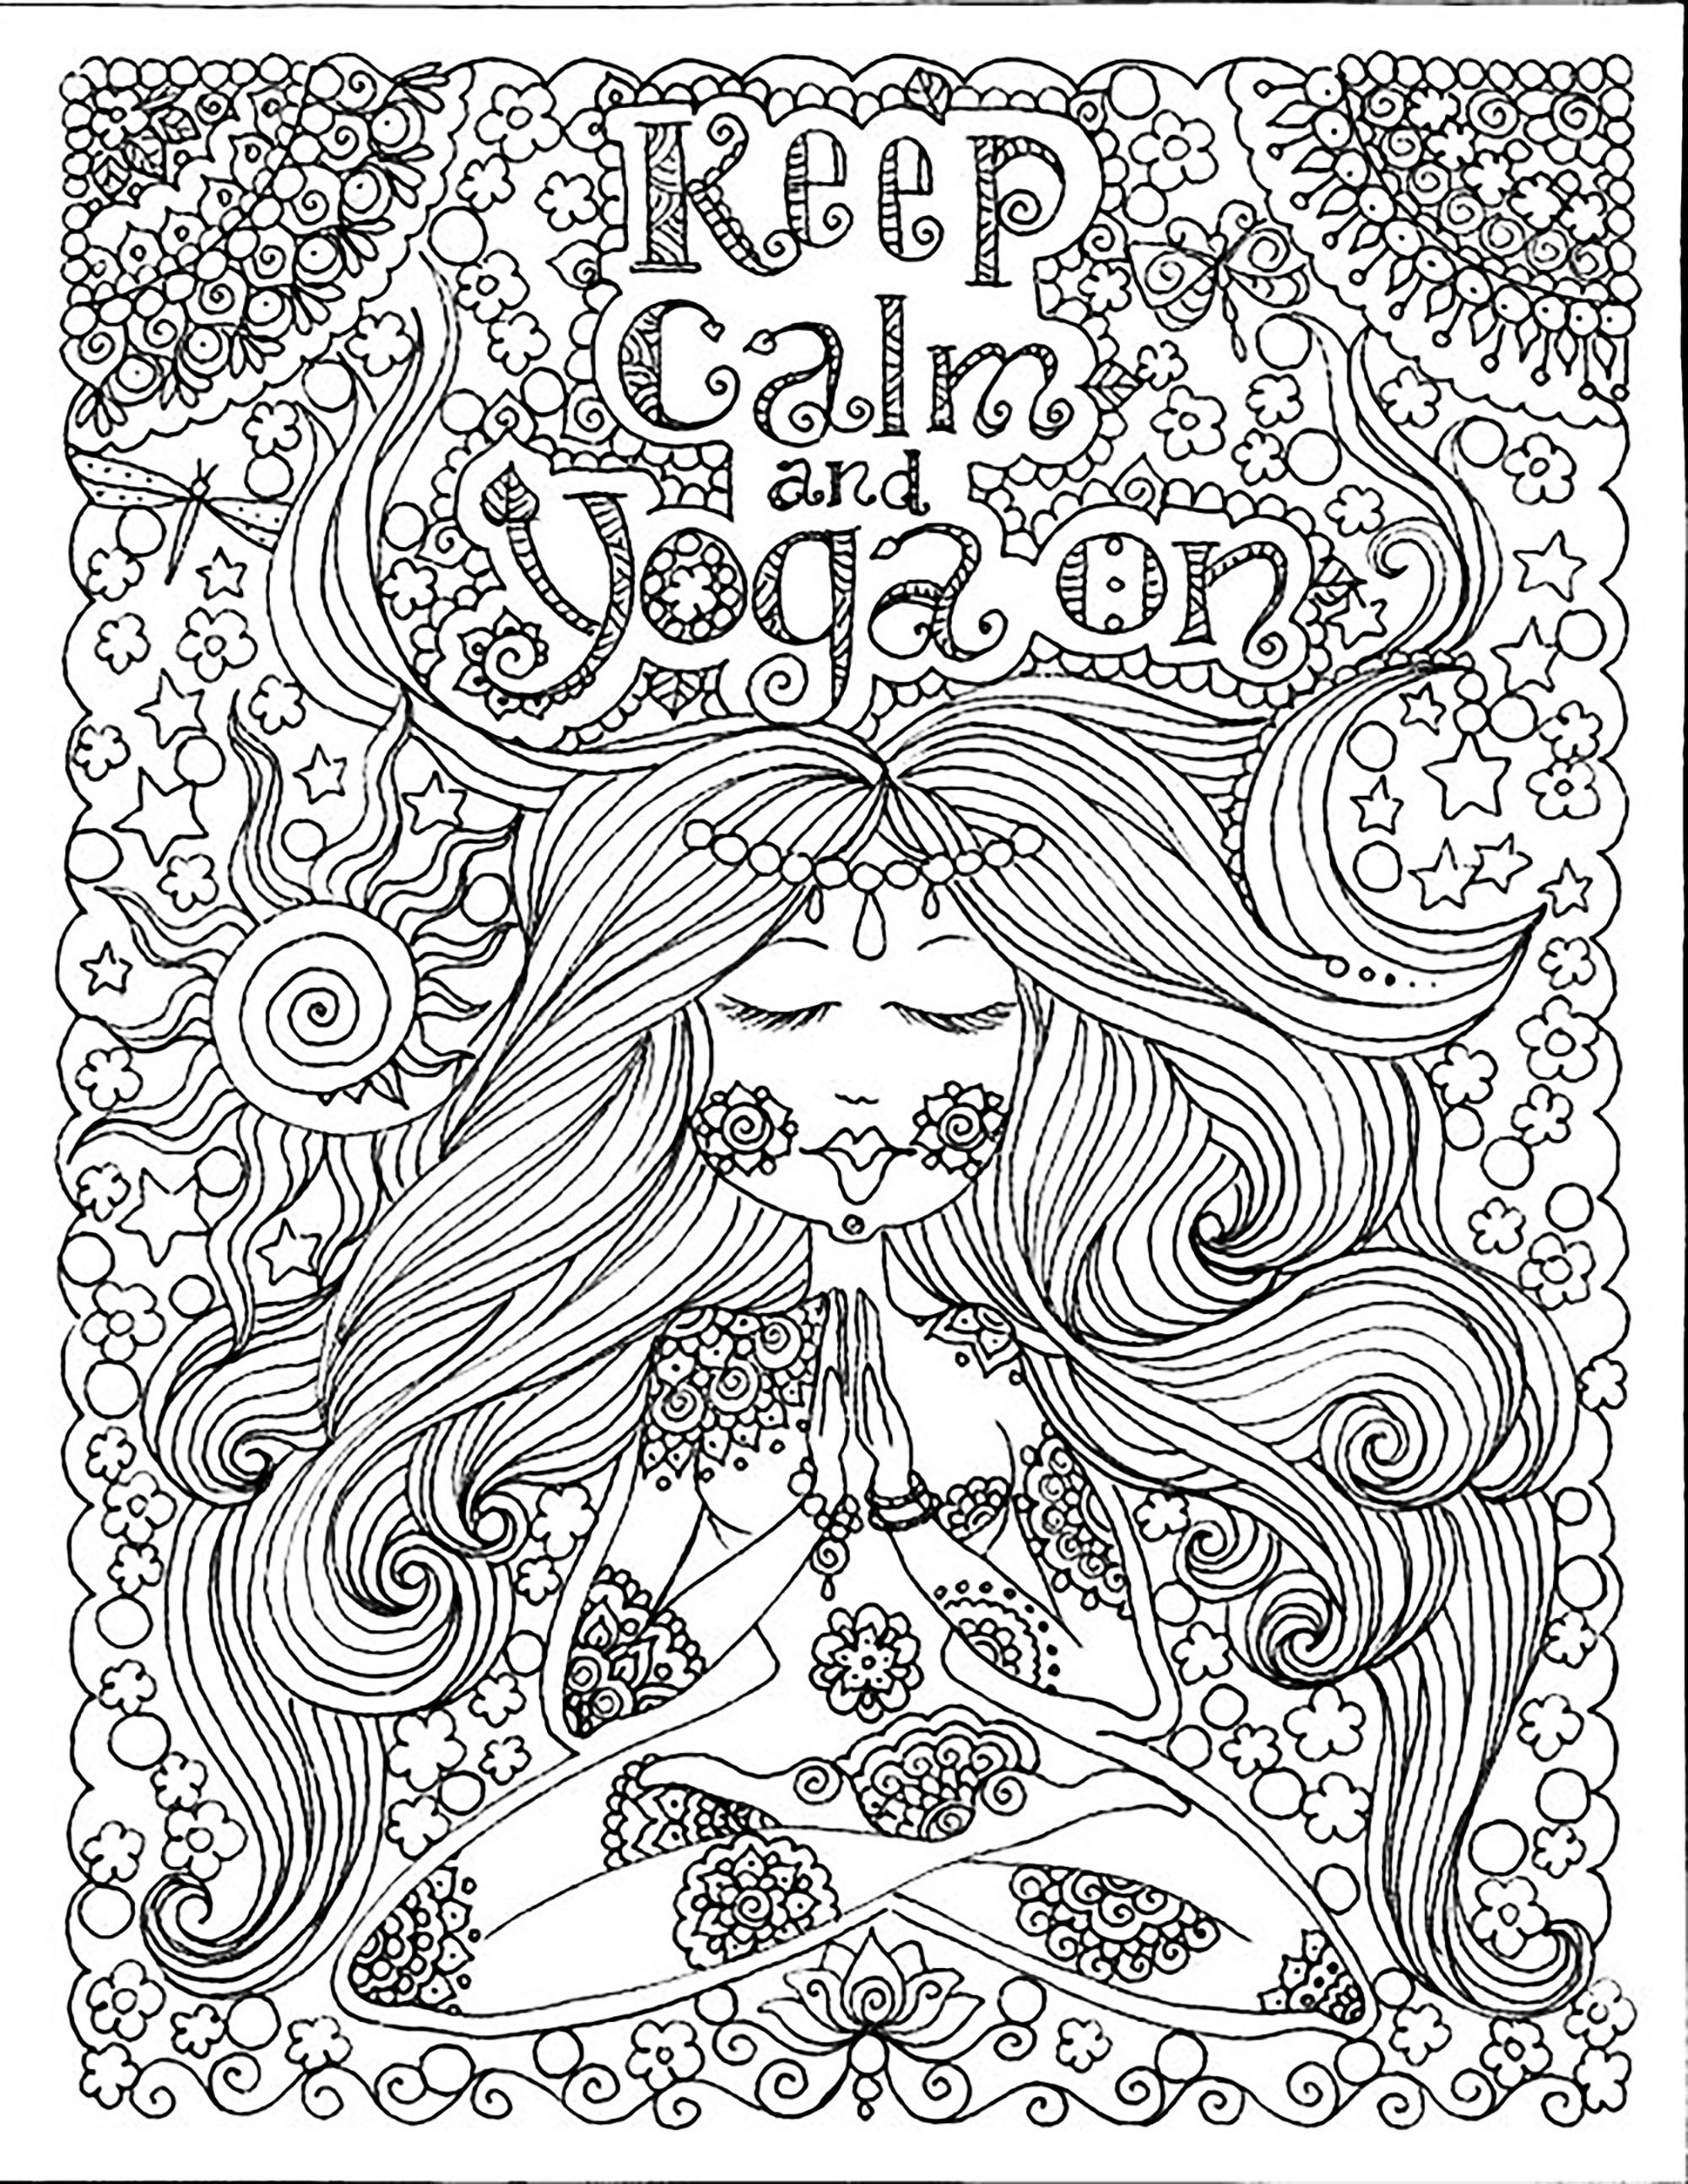 'Keep calm and do Yoga' | A partir de la galerie : Anti Stress | Artiste : Deborah Muller